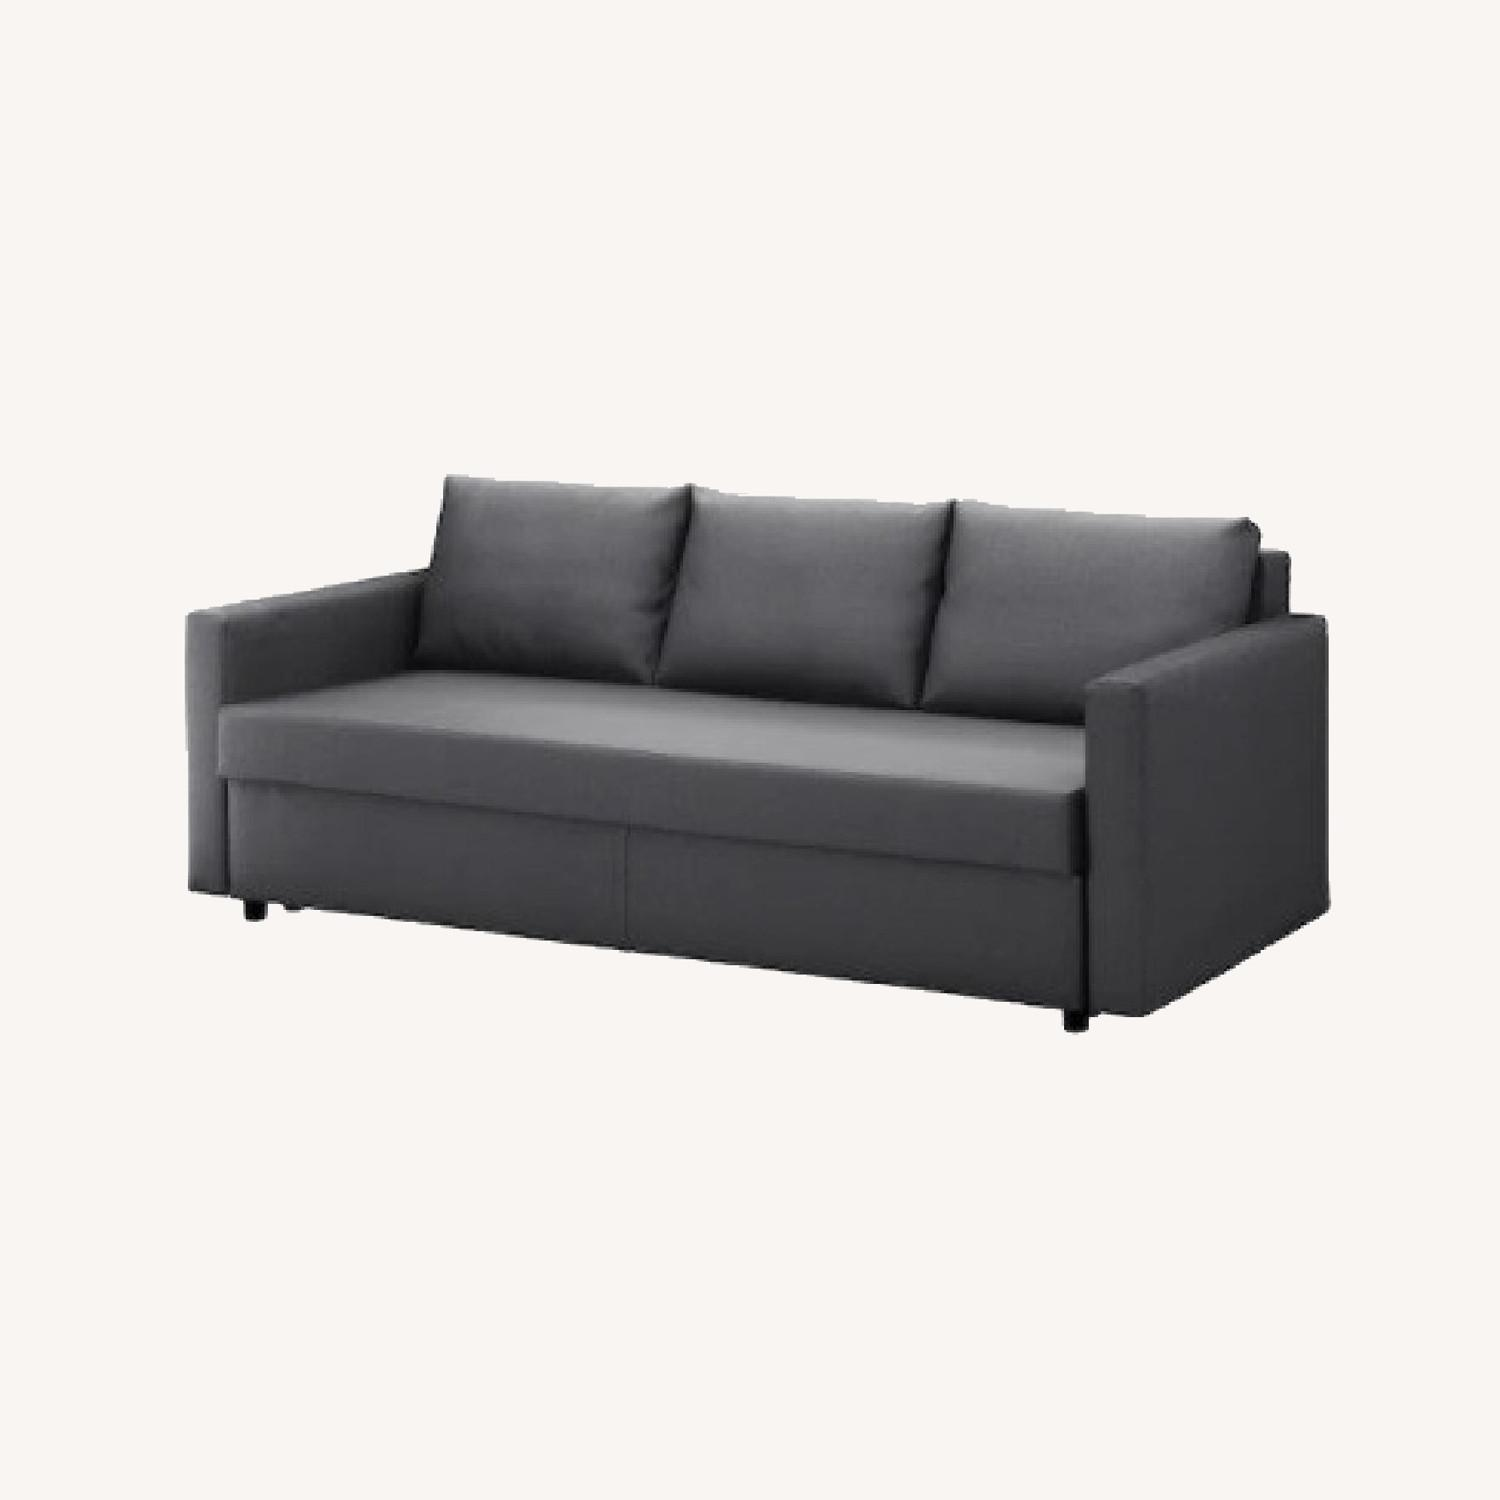 IKEA Dark Grey Sofa Bed - image-0